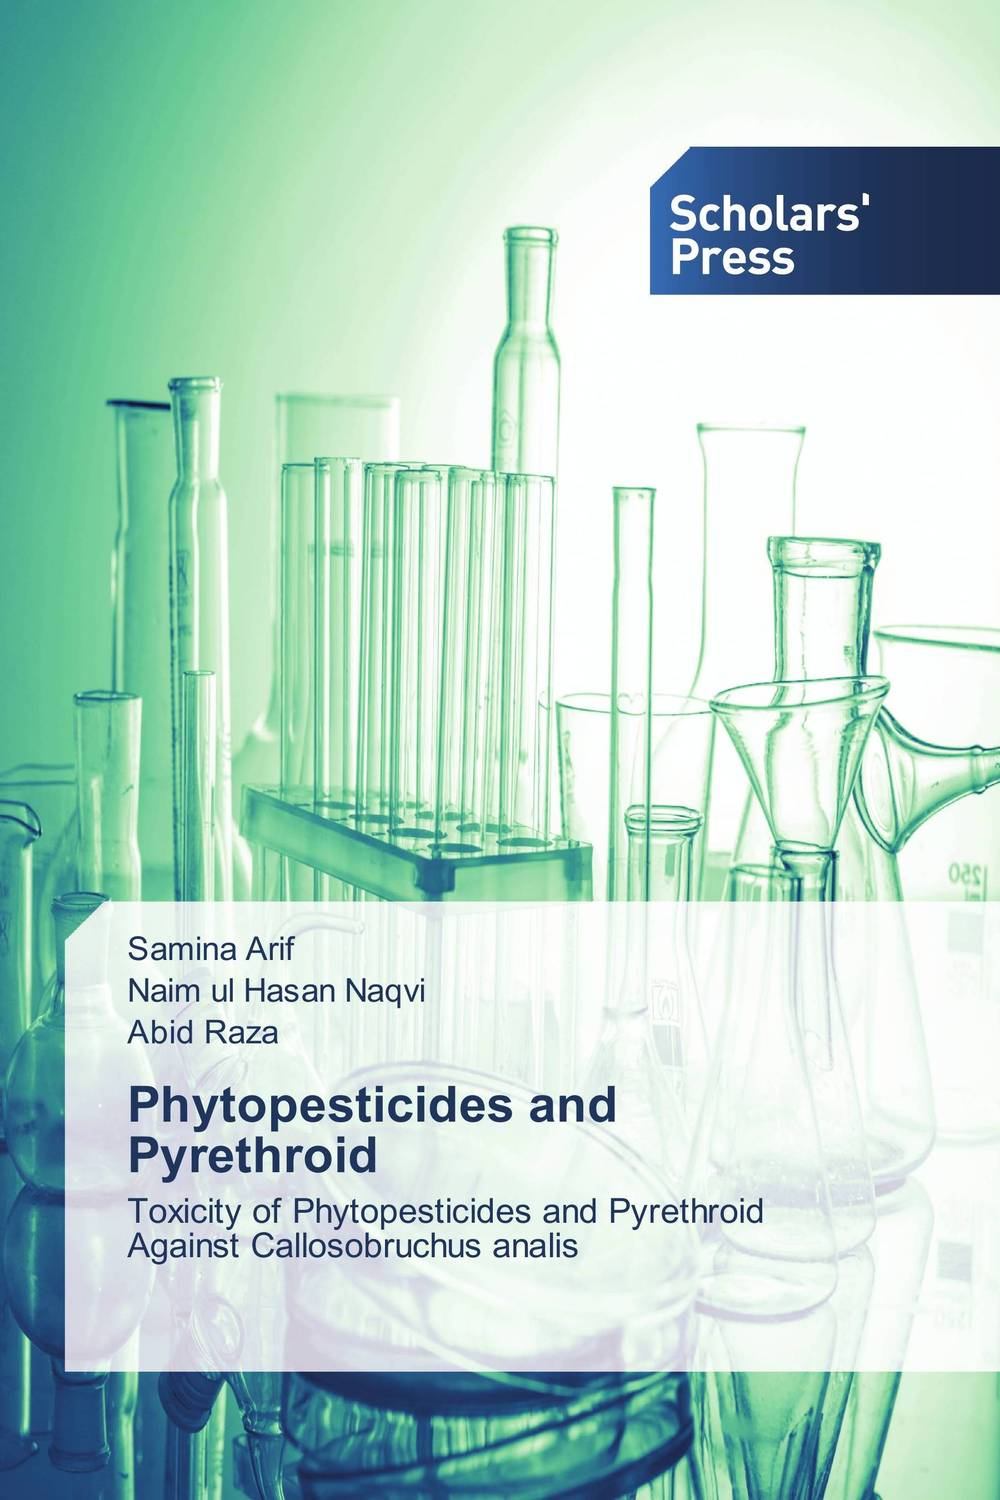 Phytopesticides and Pyrethroid antimicrobial properties of acorus calamus